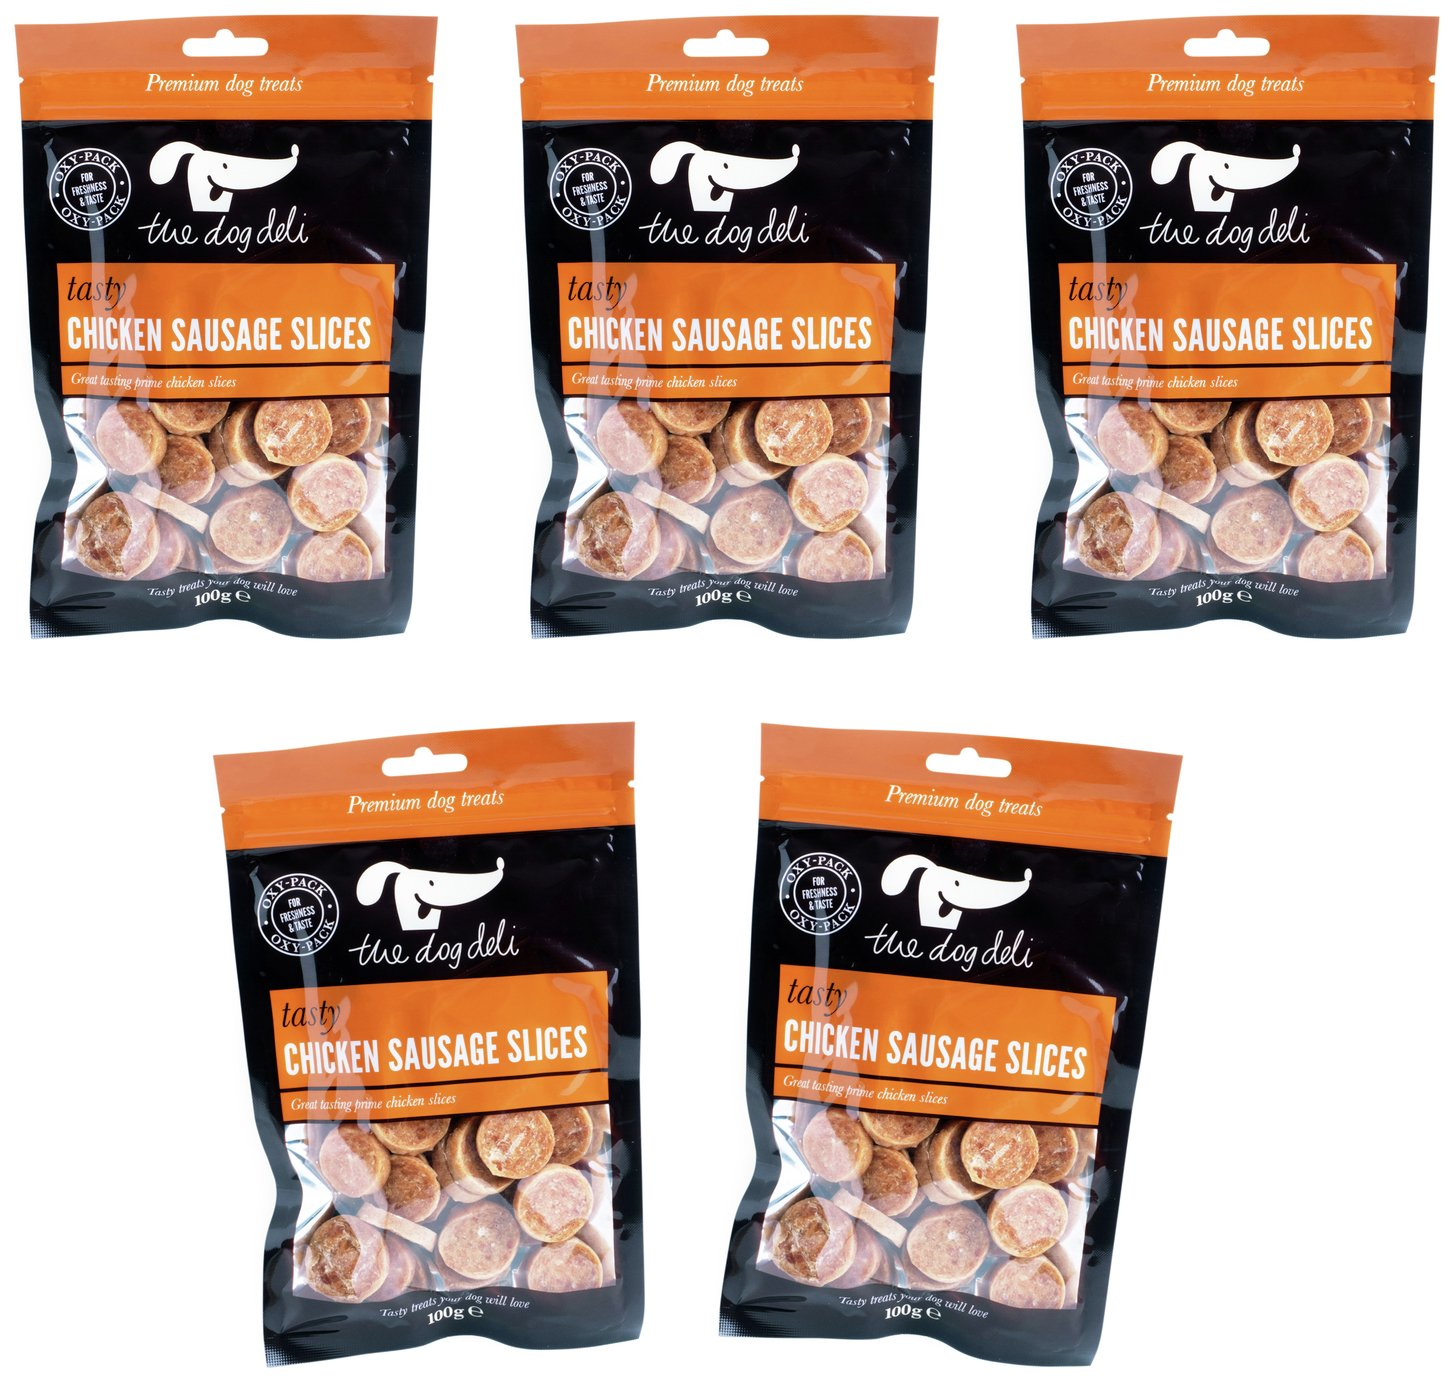 Petface 100g Pack of Chicken Sausage Slices - Pack of 5